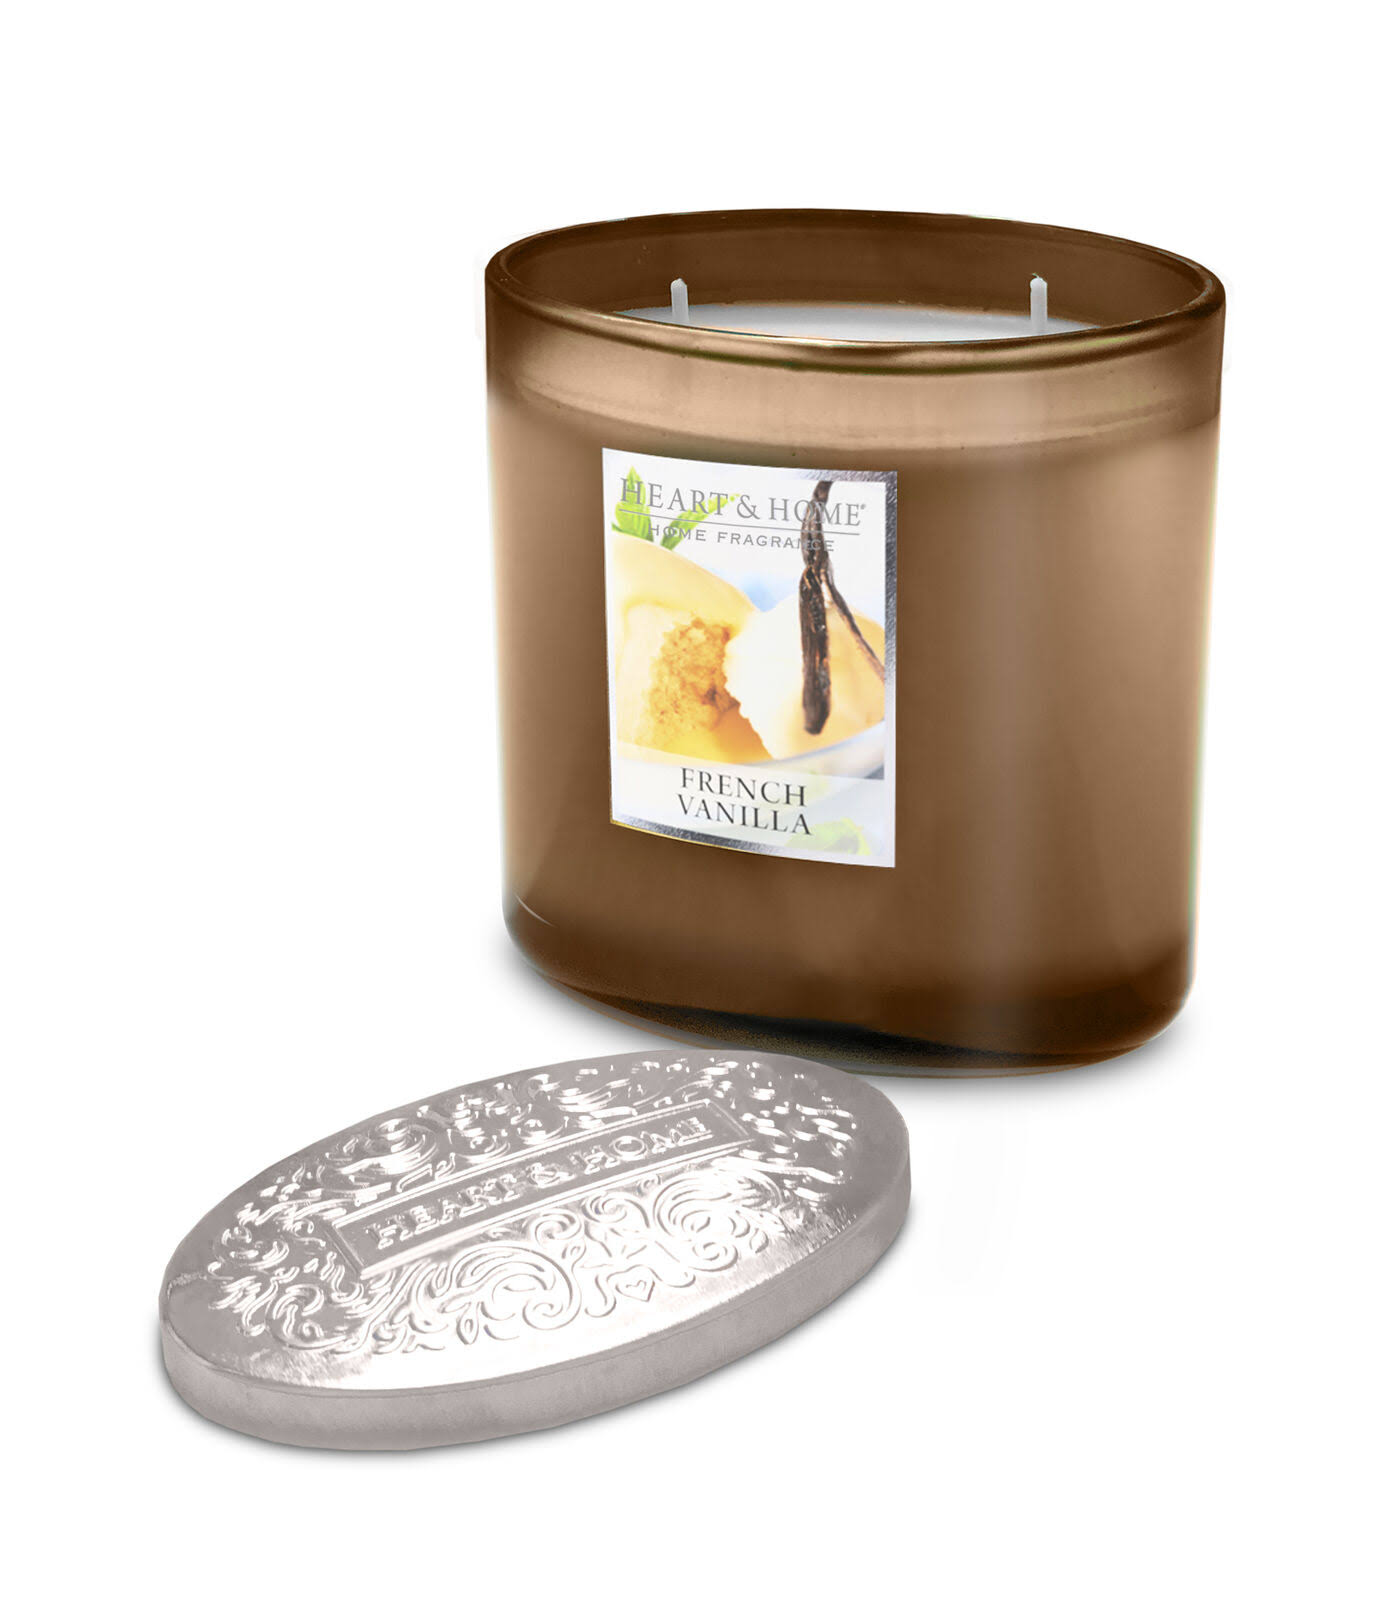 Heart & Home 2 Wick Ellipse Candle - French Vanilla Scented